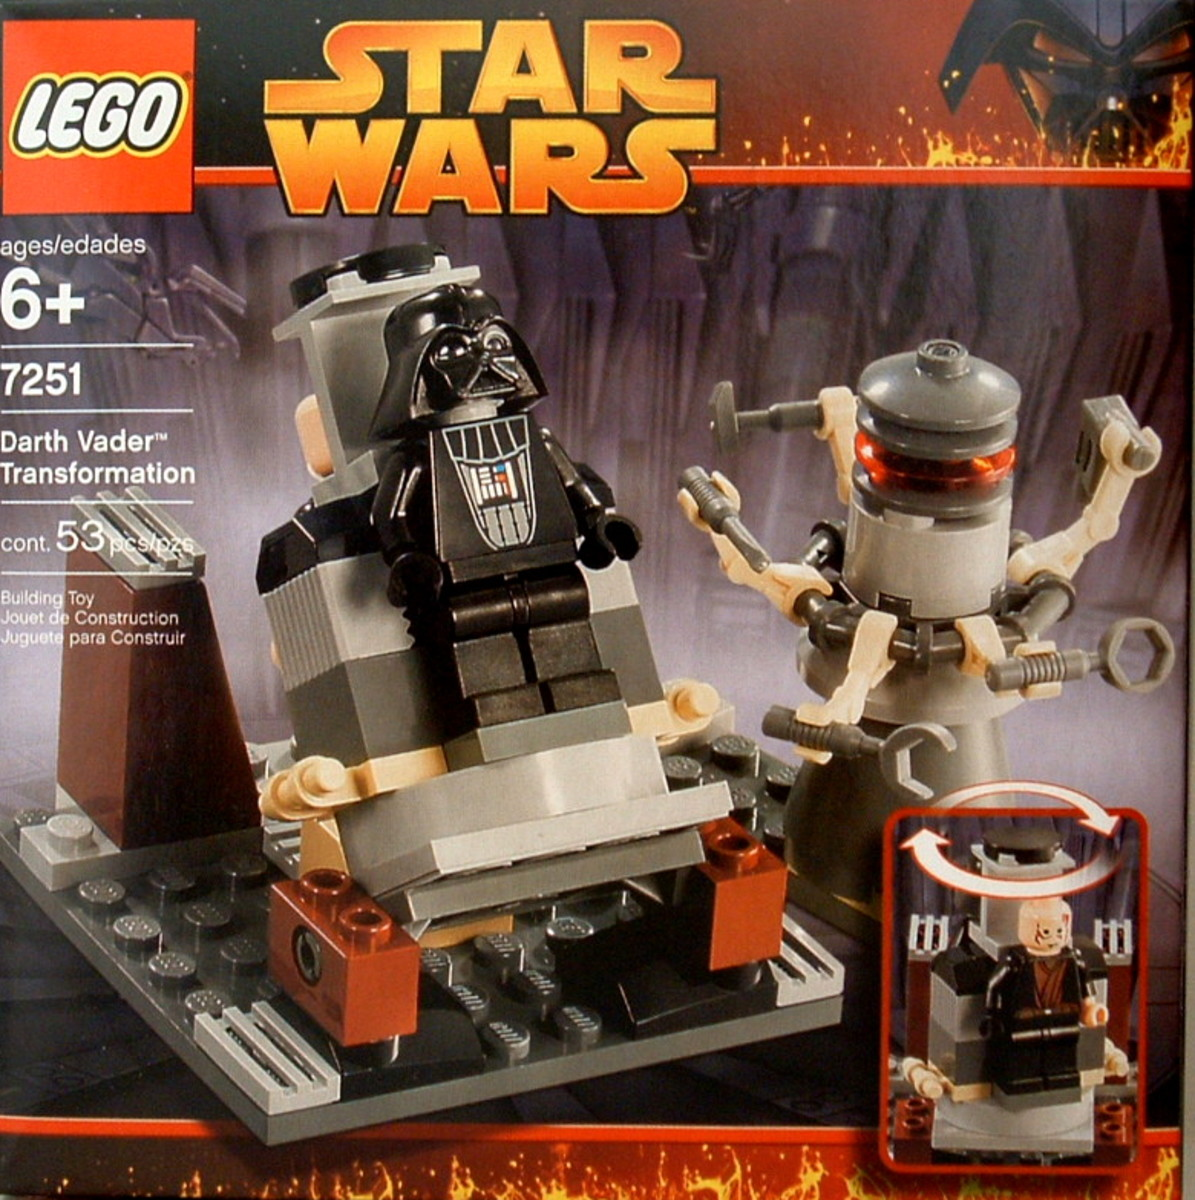 LEGO Star Wars Darth Vader Transformation 7251 Box